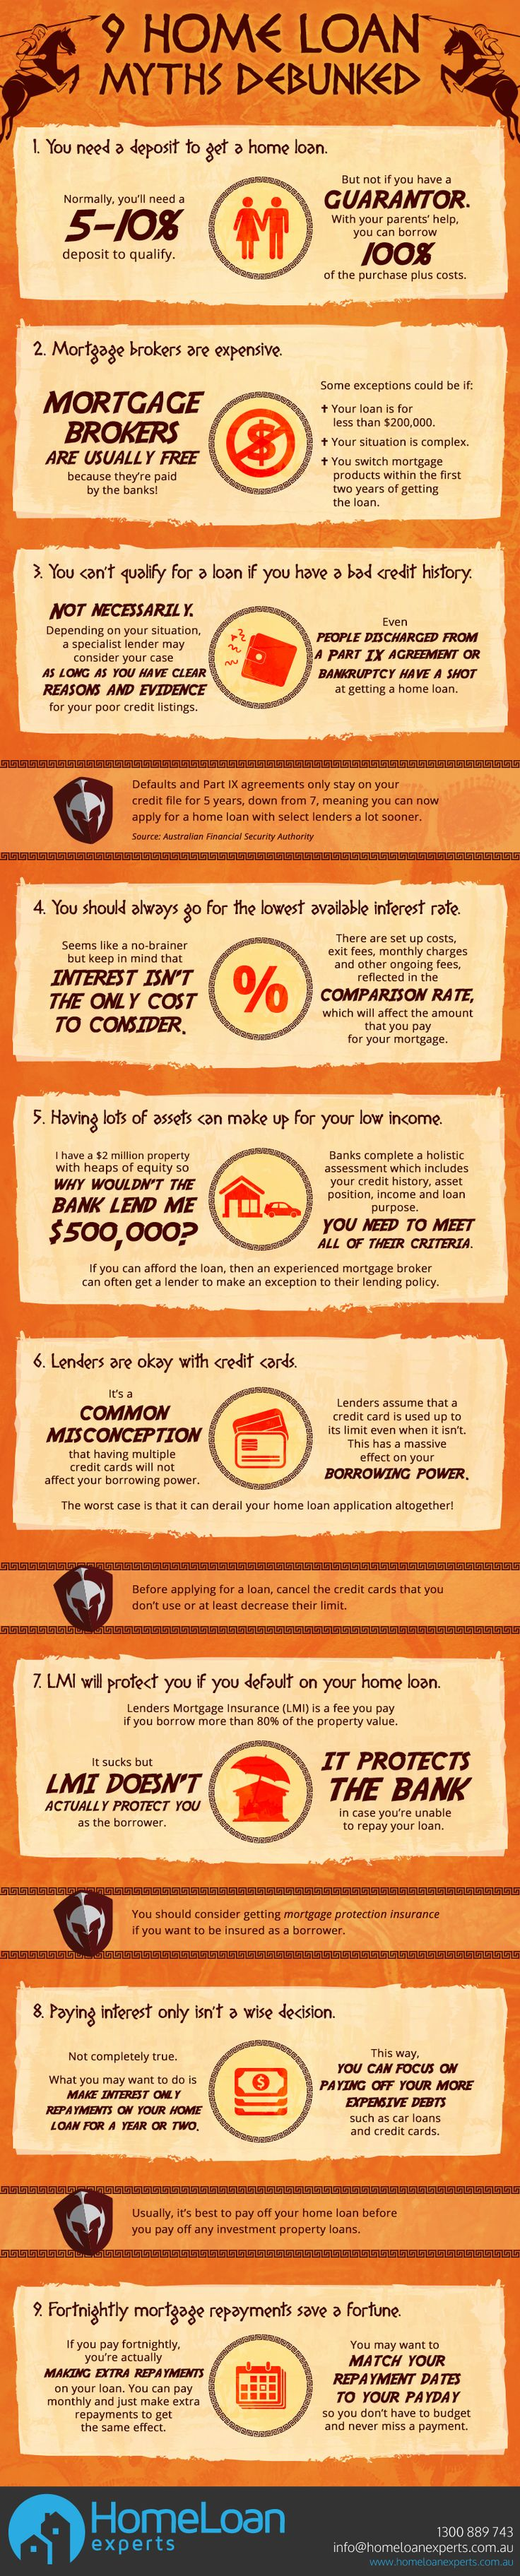 From the difference of making monthly repayments compared to fortnightly repayments, to the actual cost of using a #mortgagebroker, here are 9 popular mortgage myths about #homeloan exposed! #infographic https://www.homeloanexperts.com.au/blog/infographics/9-home-loan-myths-exposed/